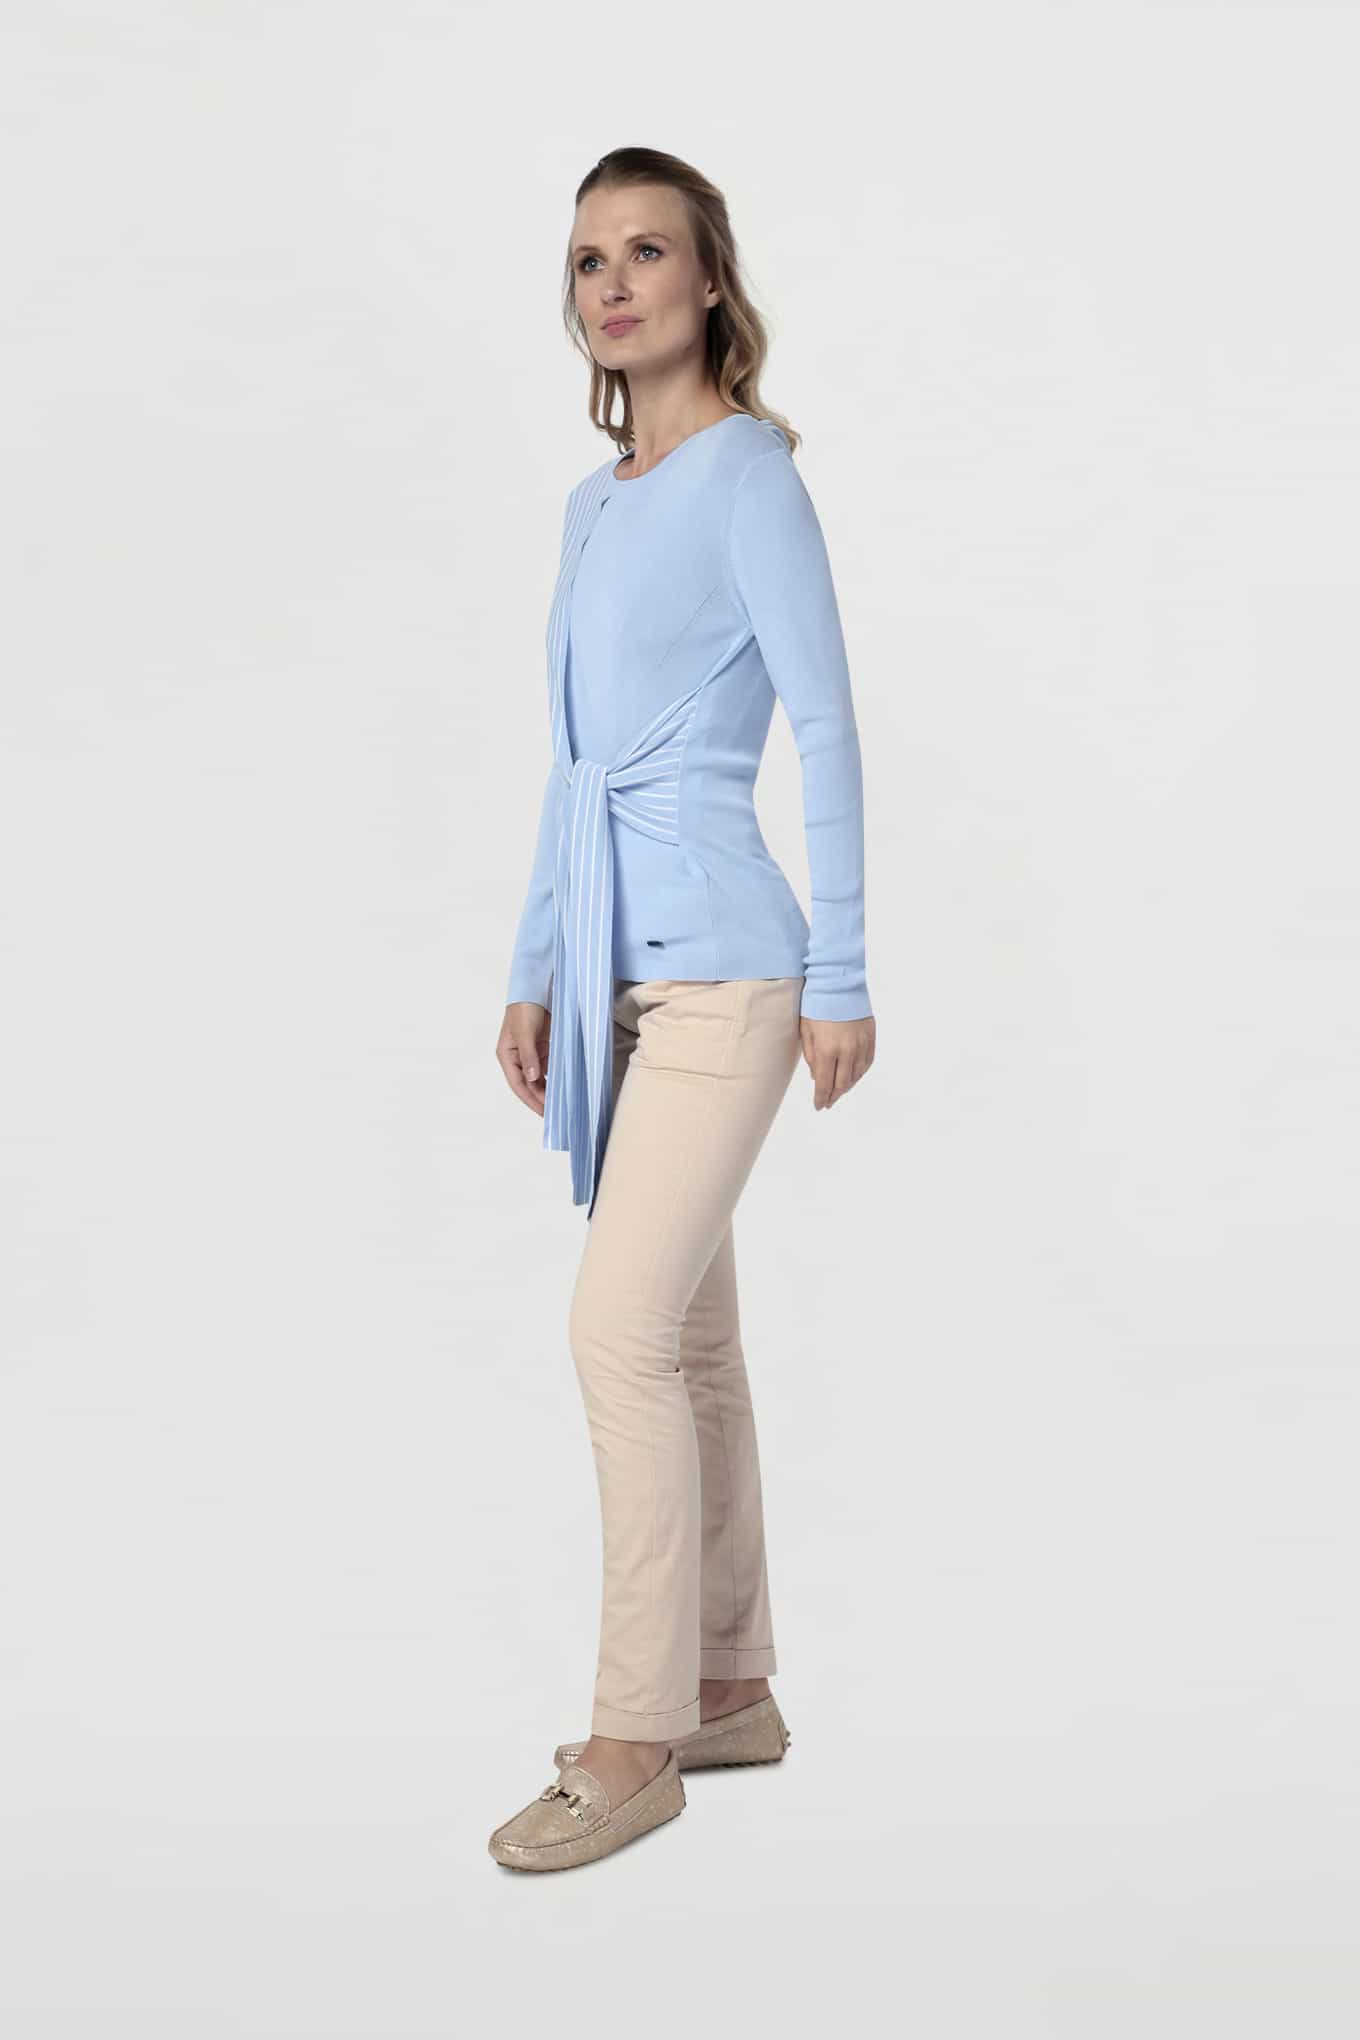 Sweater Light Blue Casual Woman